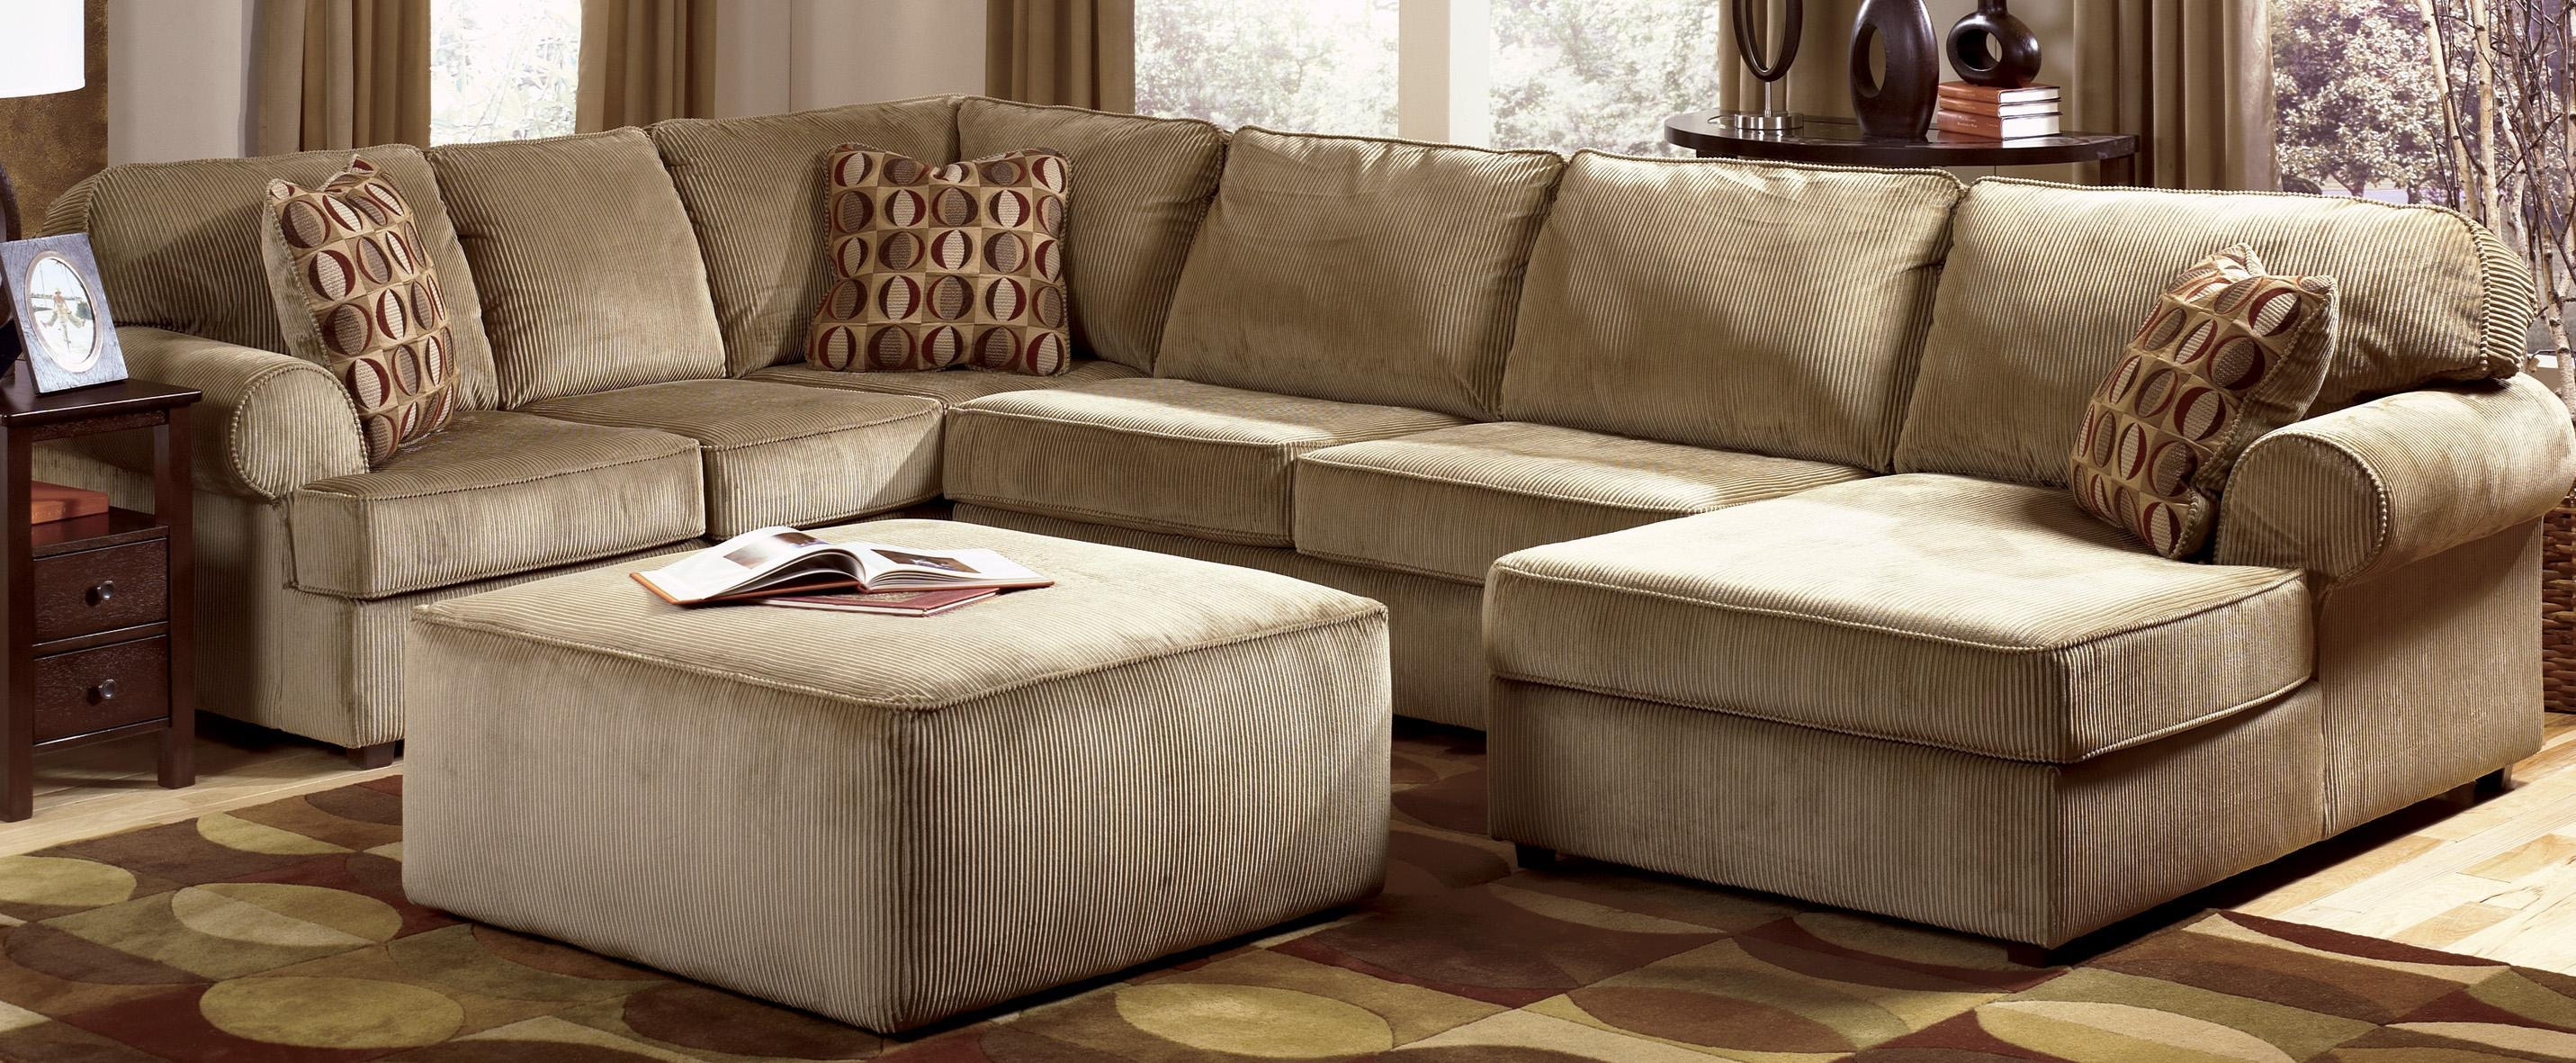 Living Room: Cheap Sofa Sectional | Affordable Sectional Sofas Regarding Sofas And Sectionals (View 9 of 20)